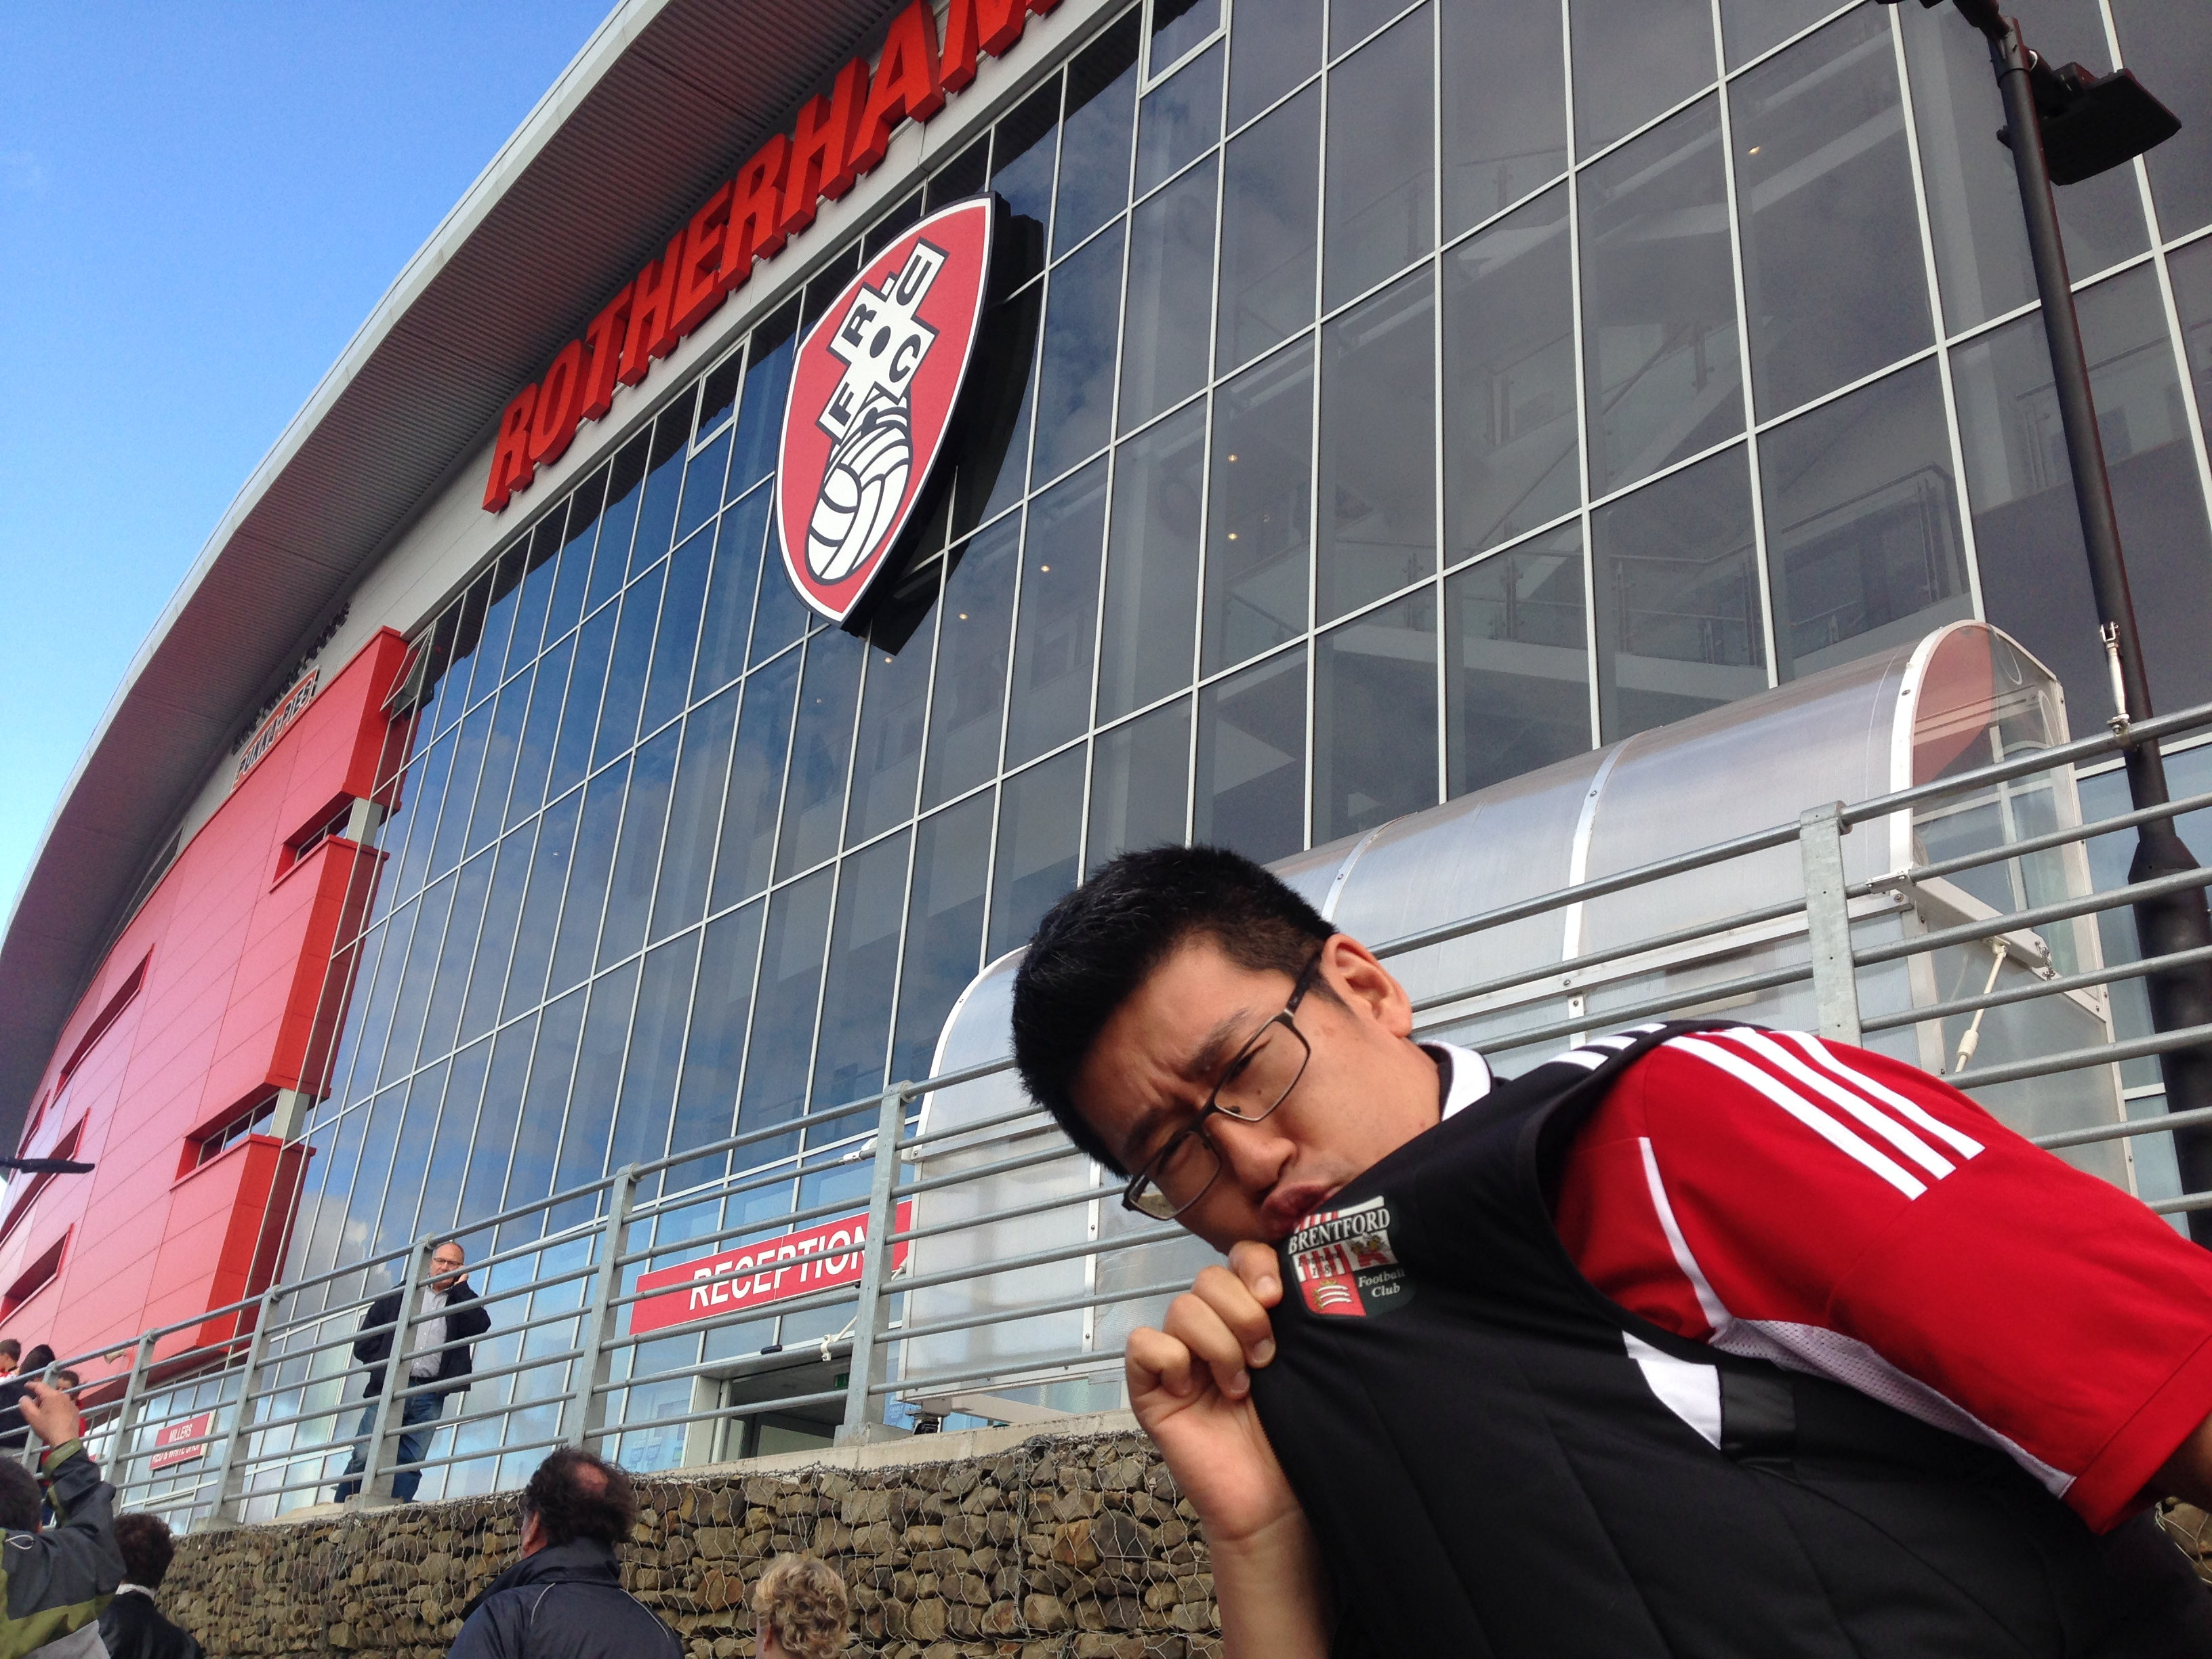 Beesotted's pre-match guide: Rotherham United